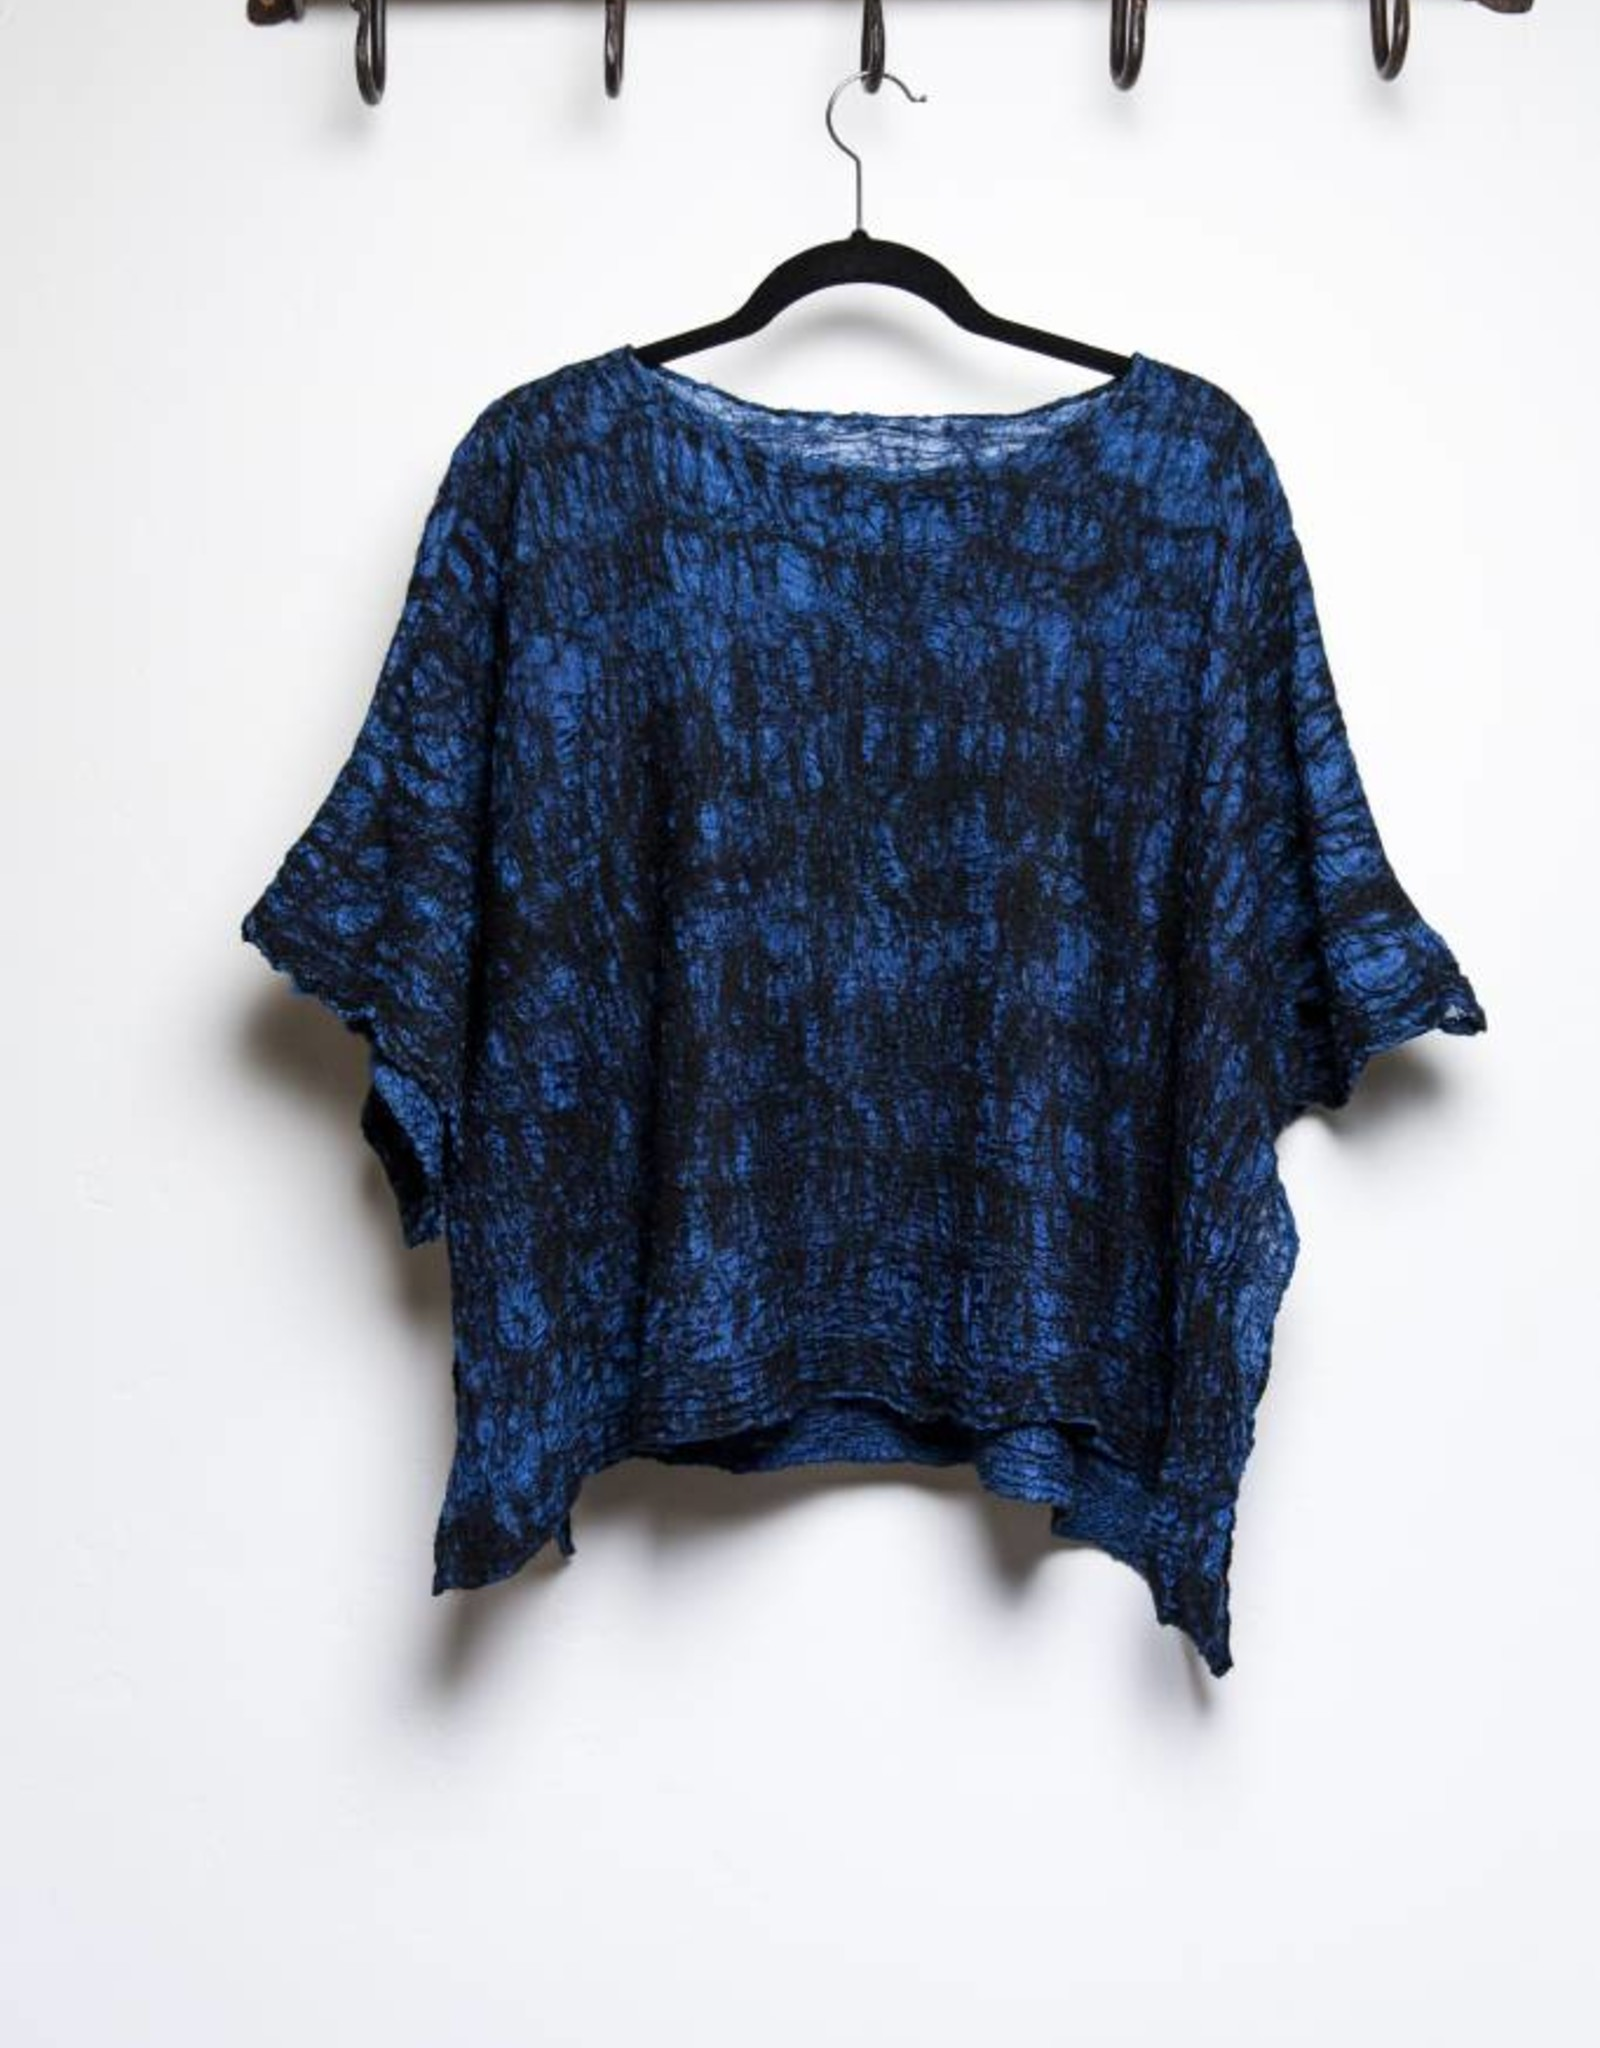 Piccolo Top - Black & Indigo